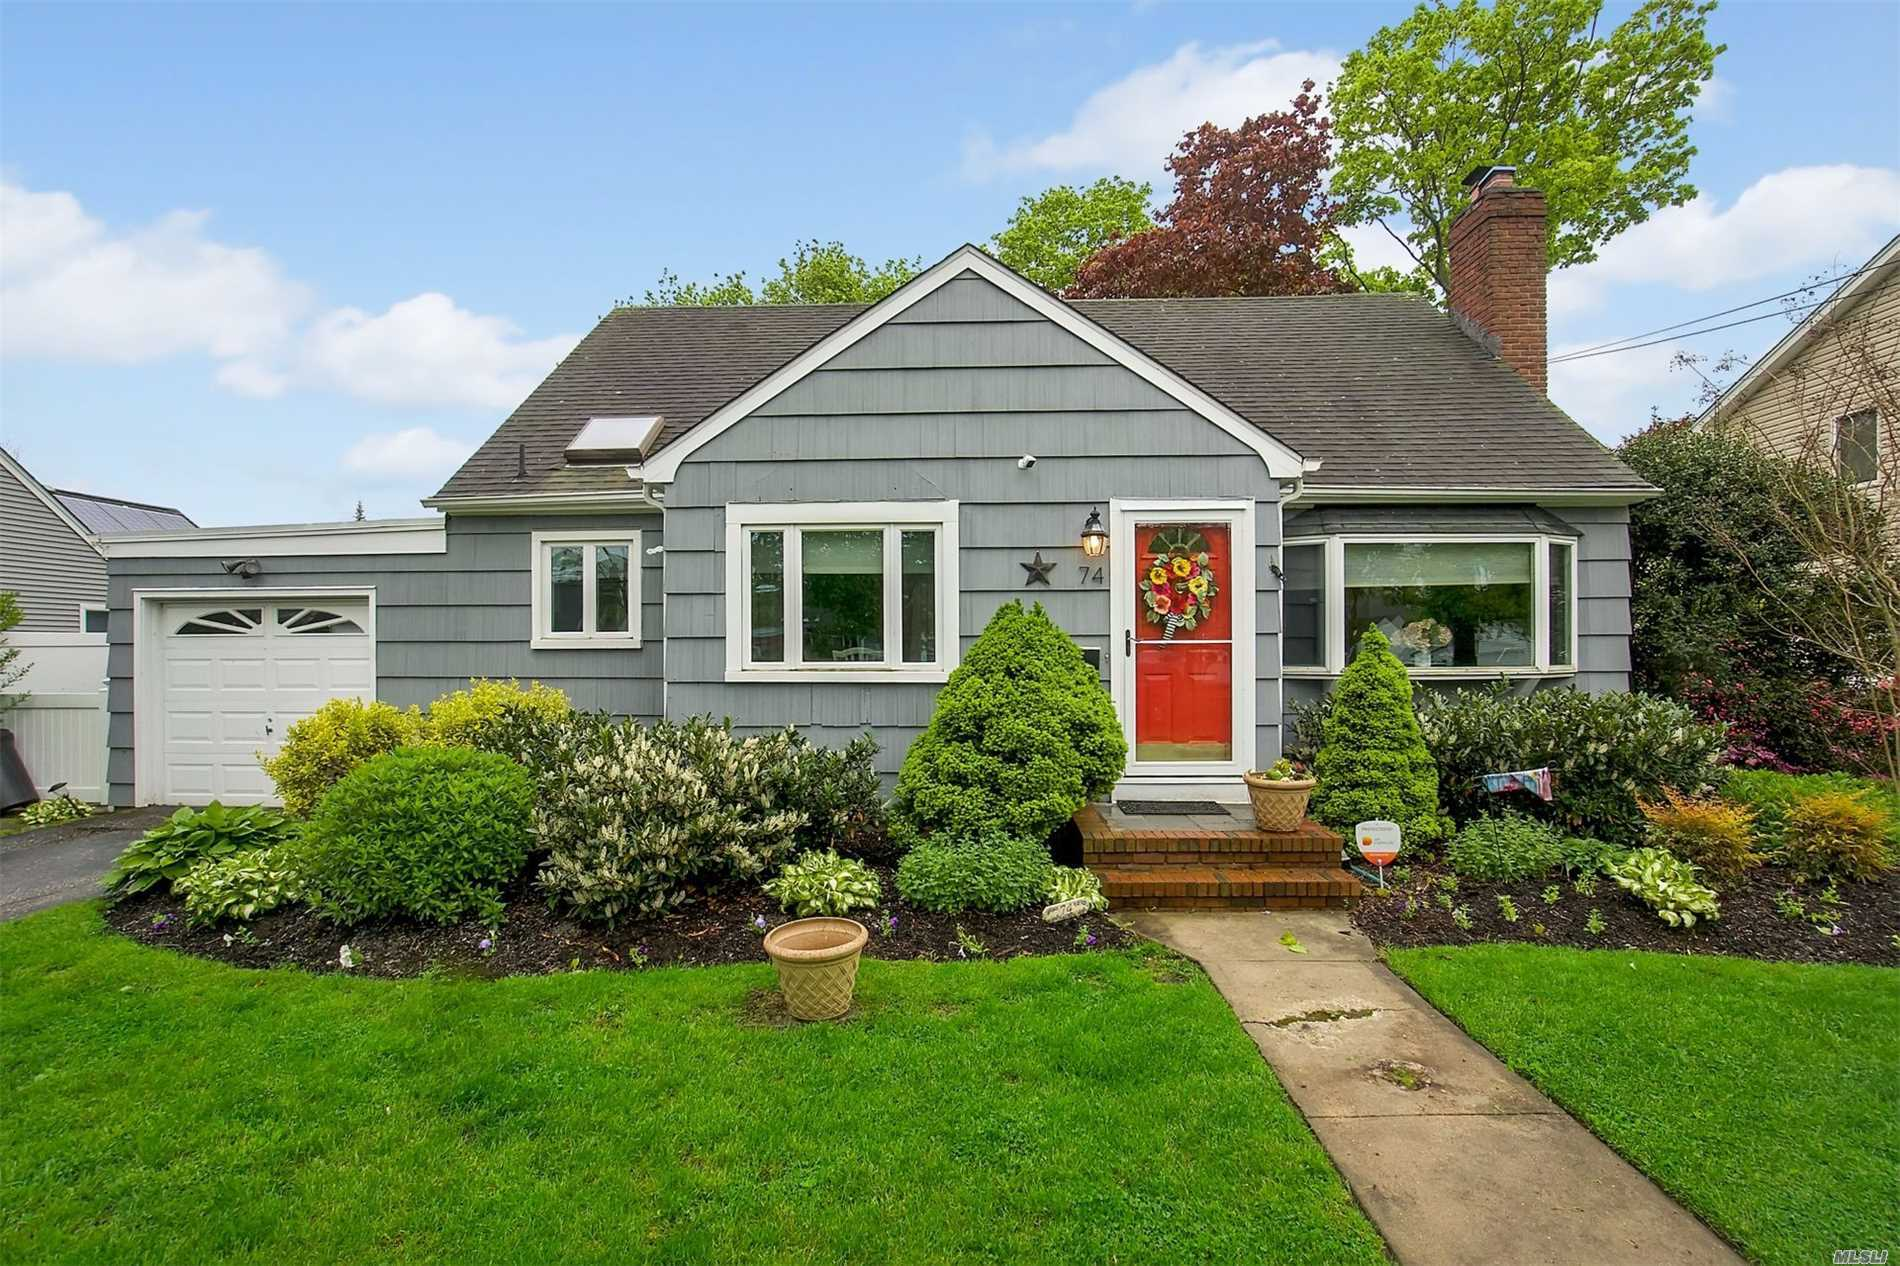 Come See This Lovely Expanded Cape with a Formal Living Rm w/Wood Burning Fireplace, Formal Dining Rm, Eat In Kitchen, Den Or Bedroom, Master Bedroom, Full Bath - 2nd Floor has Additional Bedrooms, Full Bath & Storage - There are Hardwood Floors Throughout and this home has many updates including Kitchen, Appliances, Bathrooms, Central Air, 200 Amp Electric Full Basement, 1 Car Garage - Don't Miss This One!!